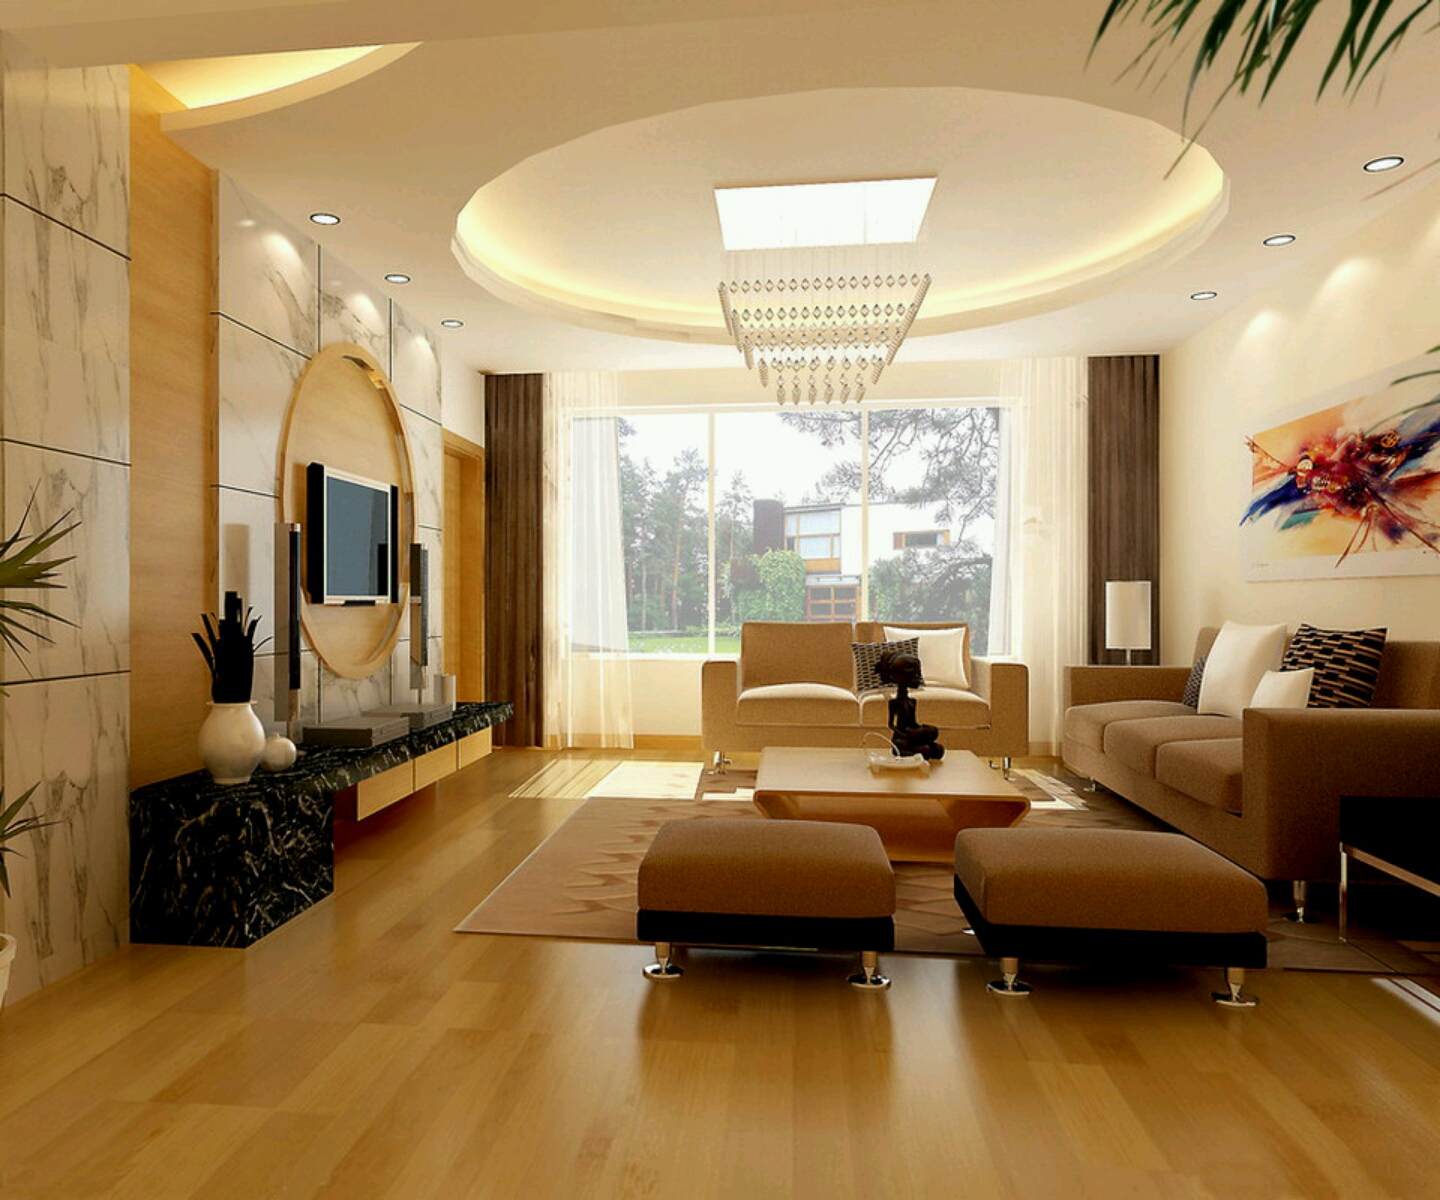 Modern interior decoration living rooms ceiling designs for Simple modern interior design